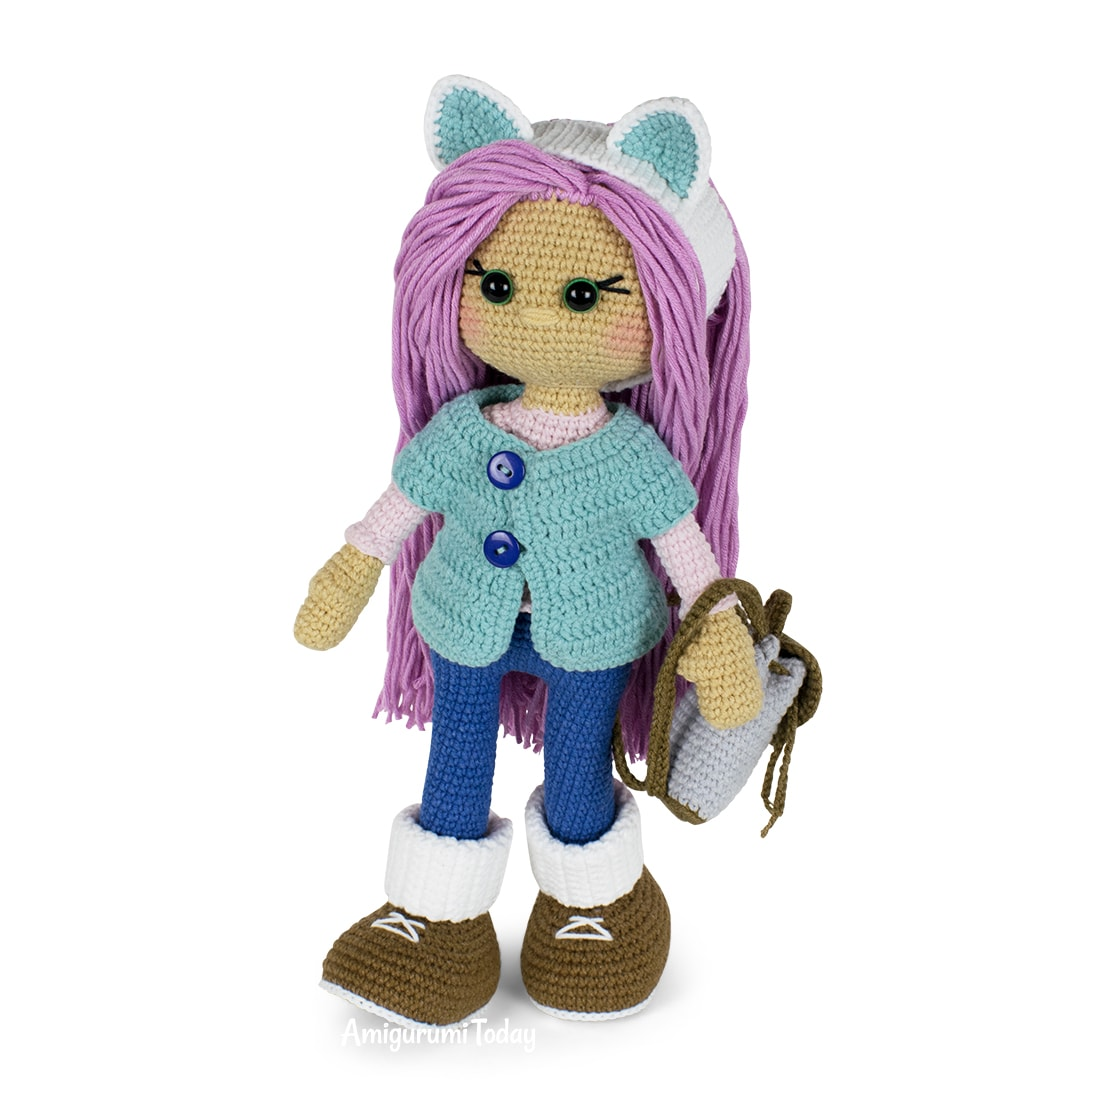 Molly Doll crochet pattern for free